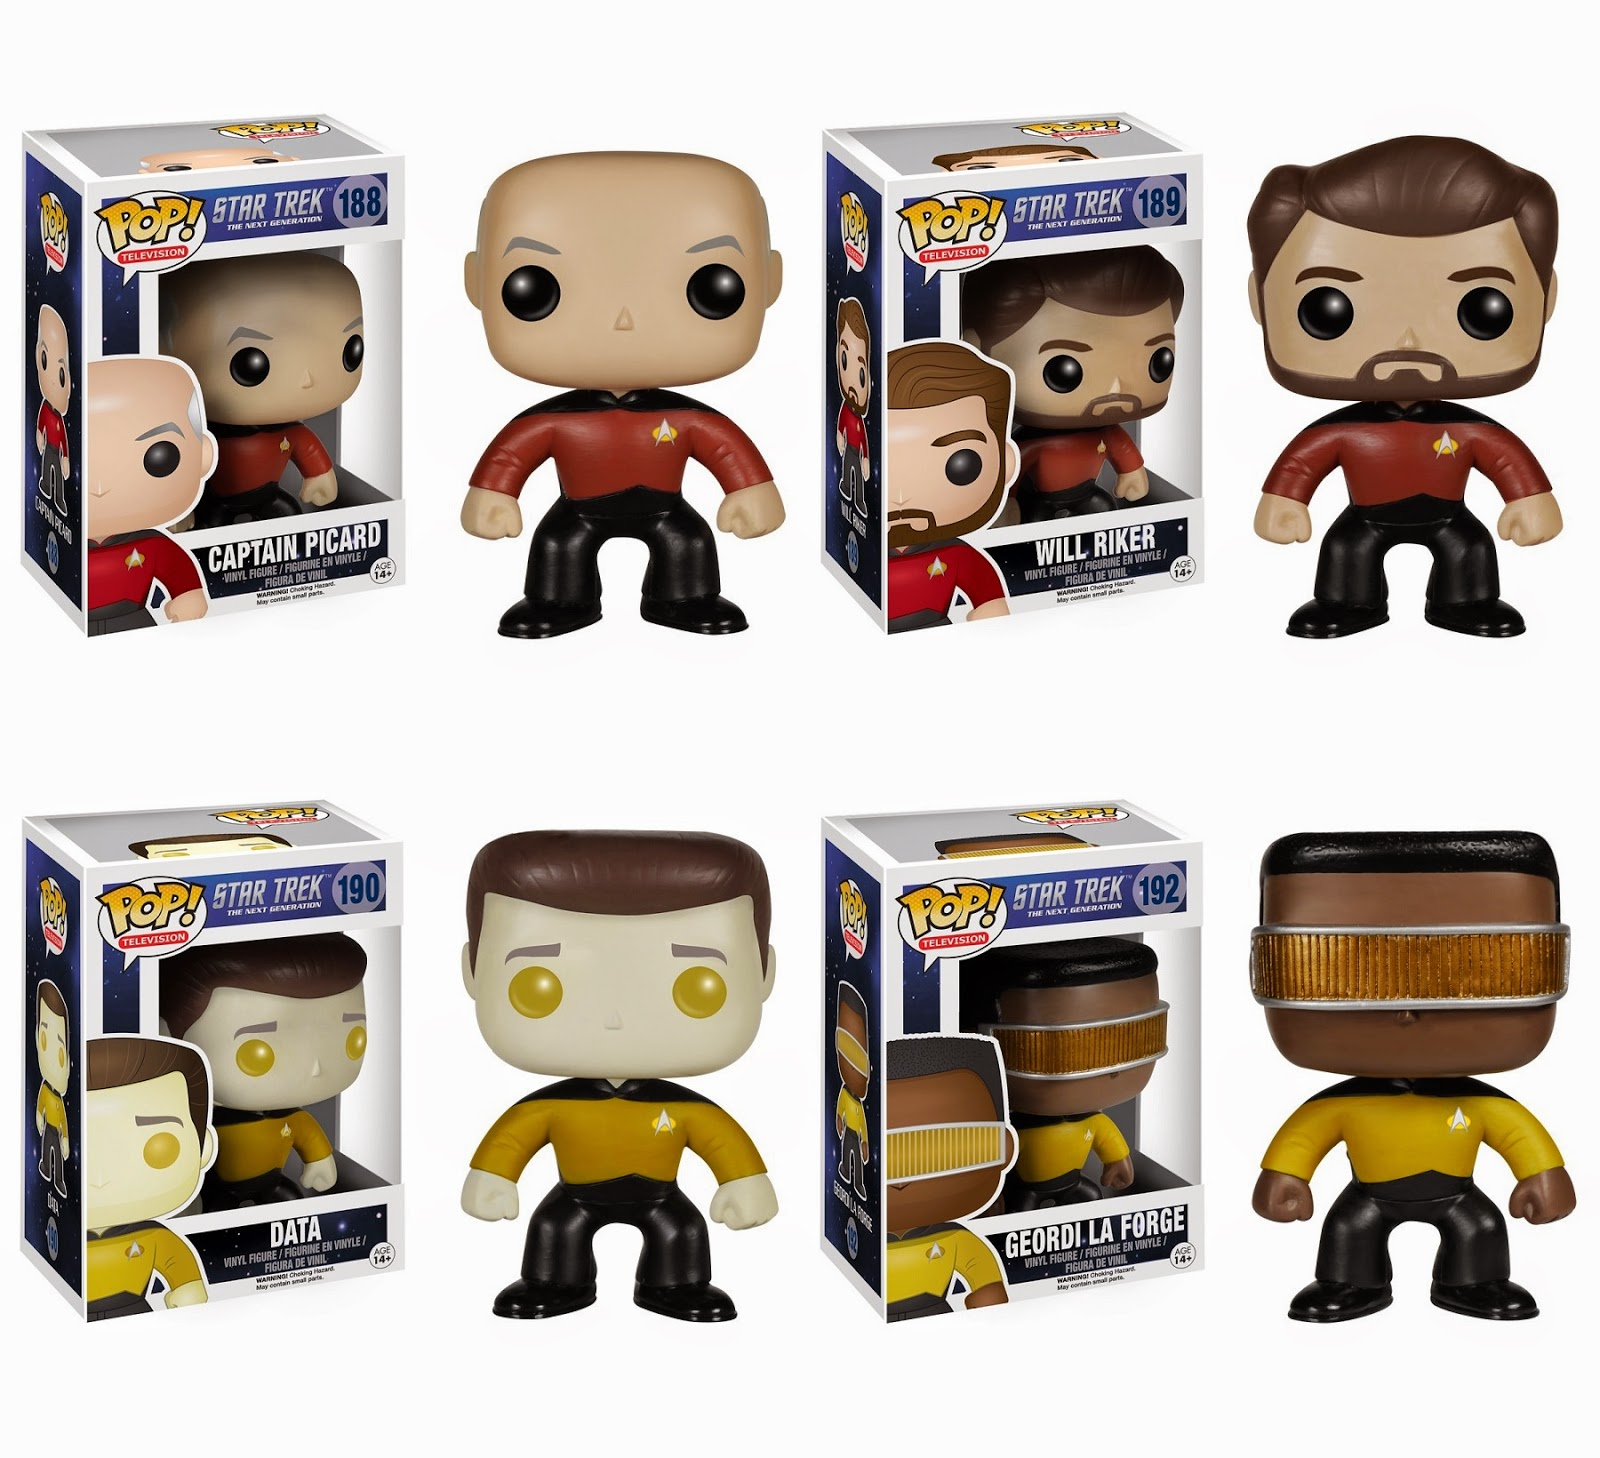 Star Trek: The Next Generation Pop! Television Vinyl Figures by Funko - Captain Jean-Luc Picard, Will Riker, Data & Geordi La Forge